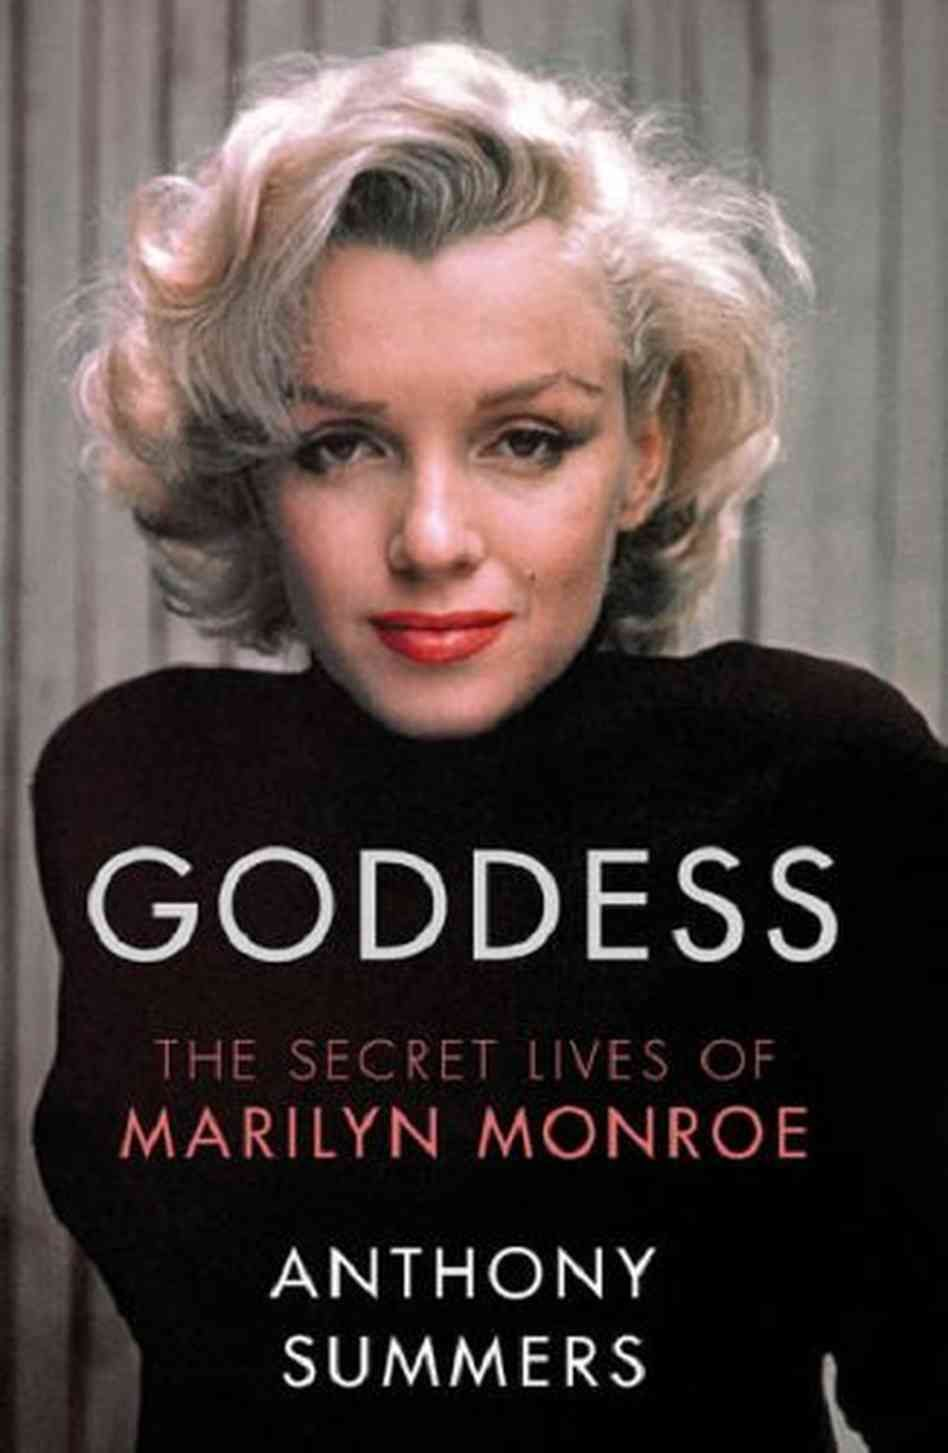 His 2009 biography of Marilyn Monroe - The Secret Life of Marilyn Monroe - made a re-appearance on the e-books best-seller list at number two in the summer of 2012. Description from goodreads.com. I searched for this on bing.com/images